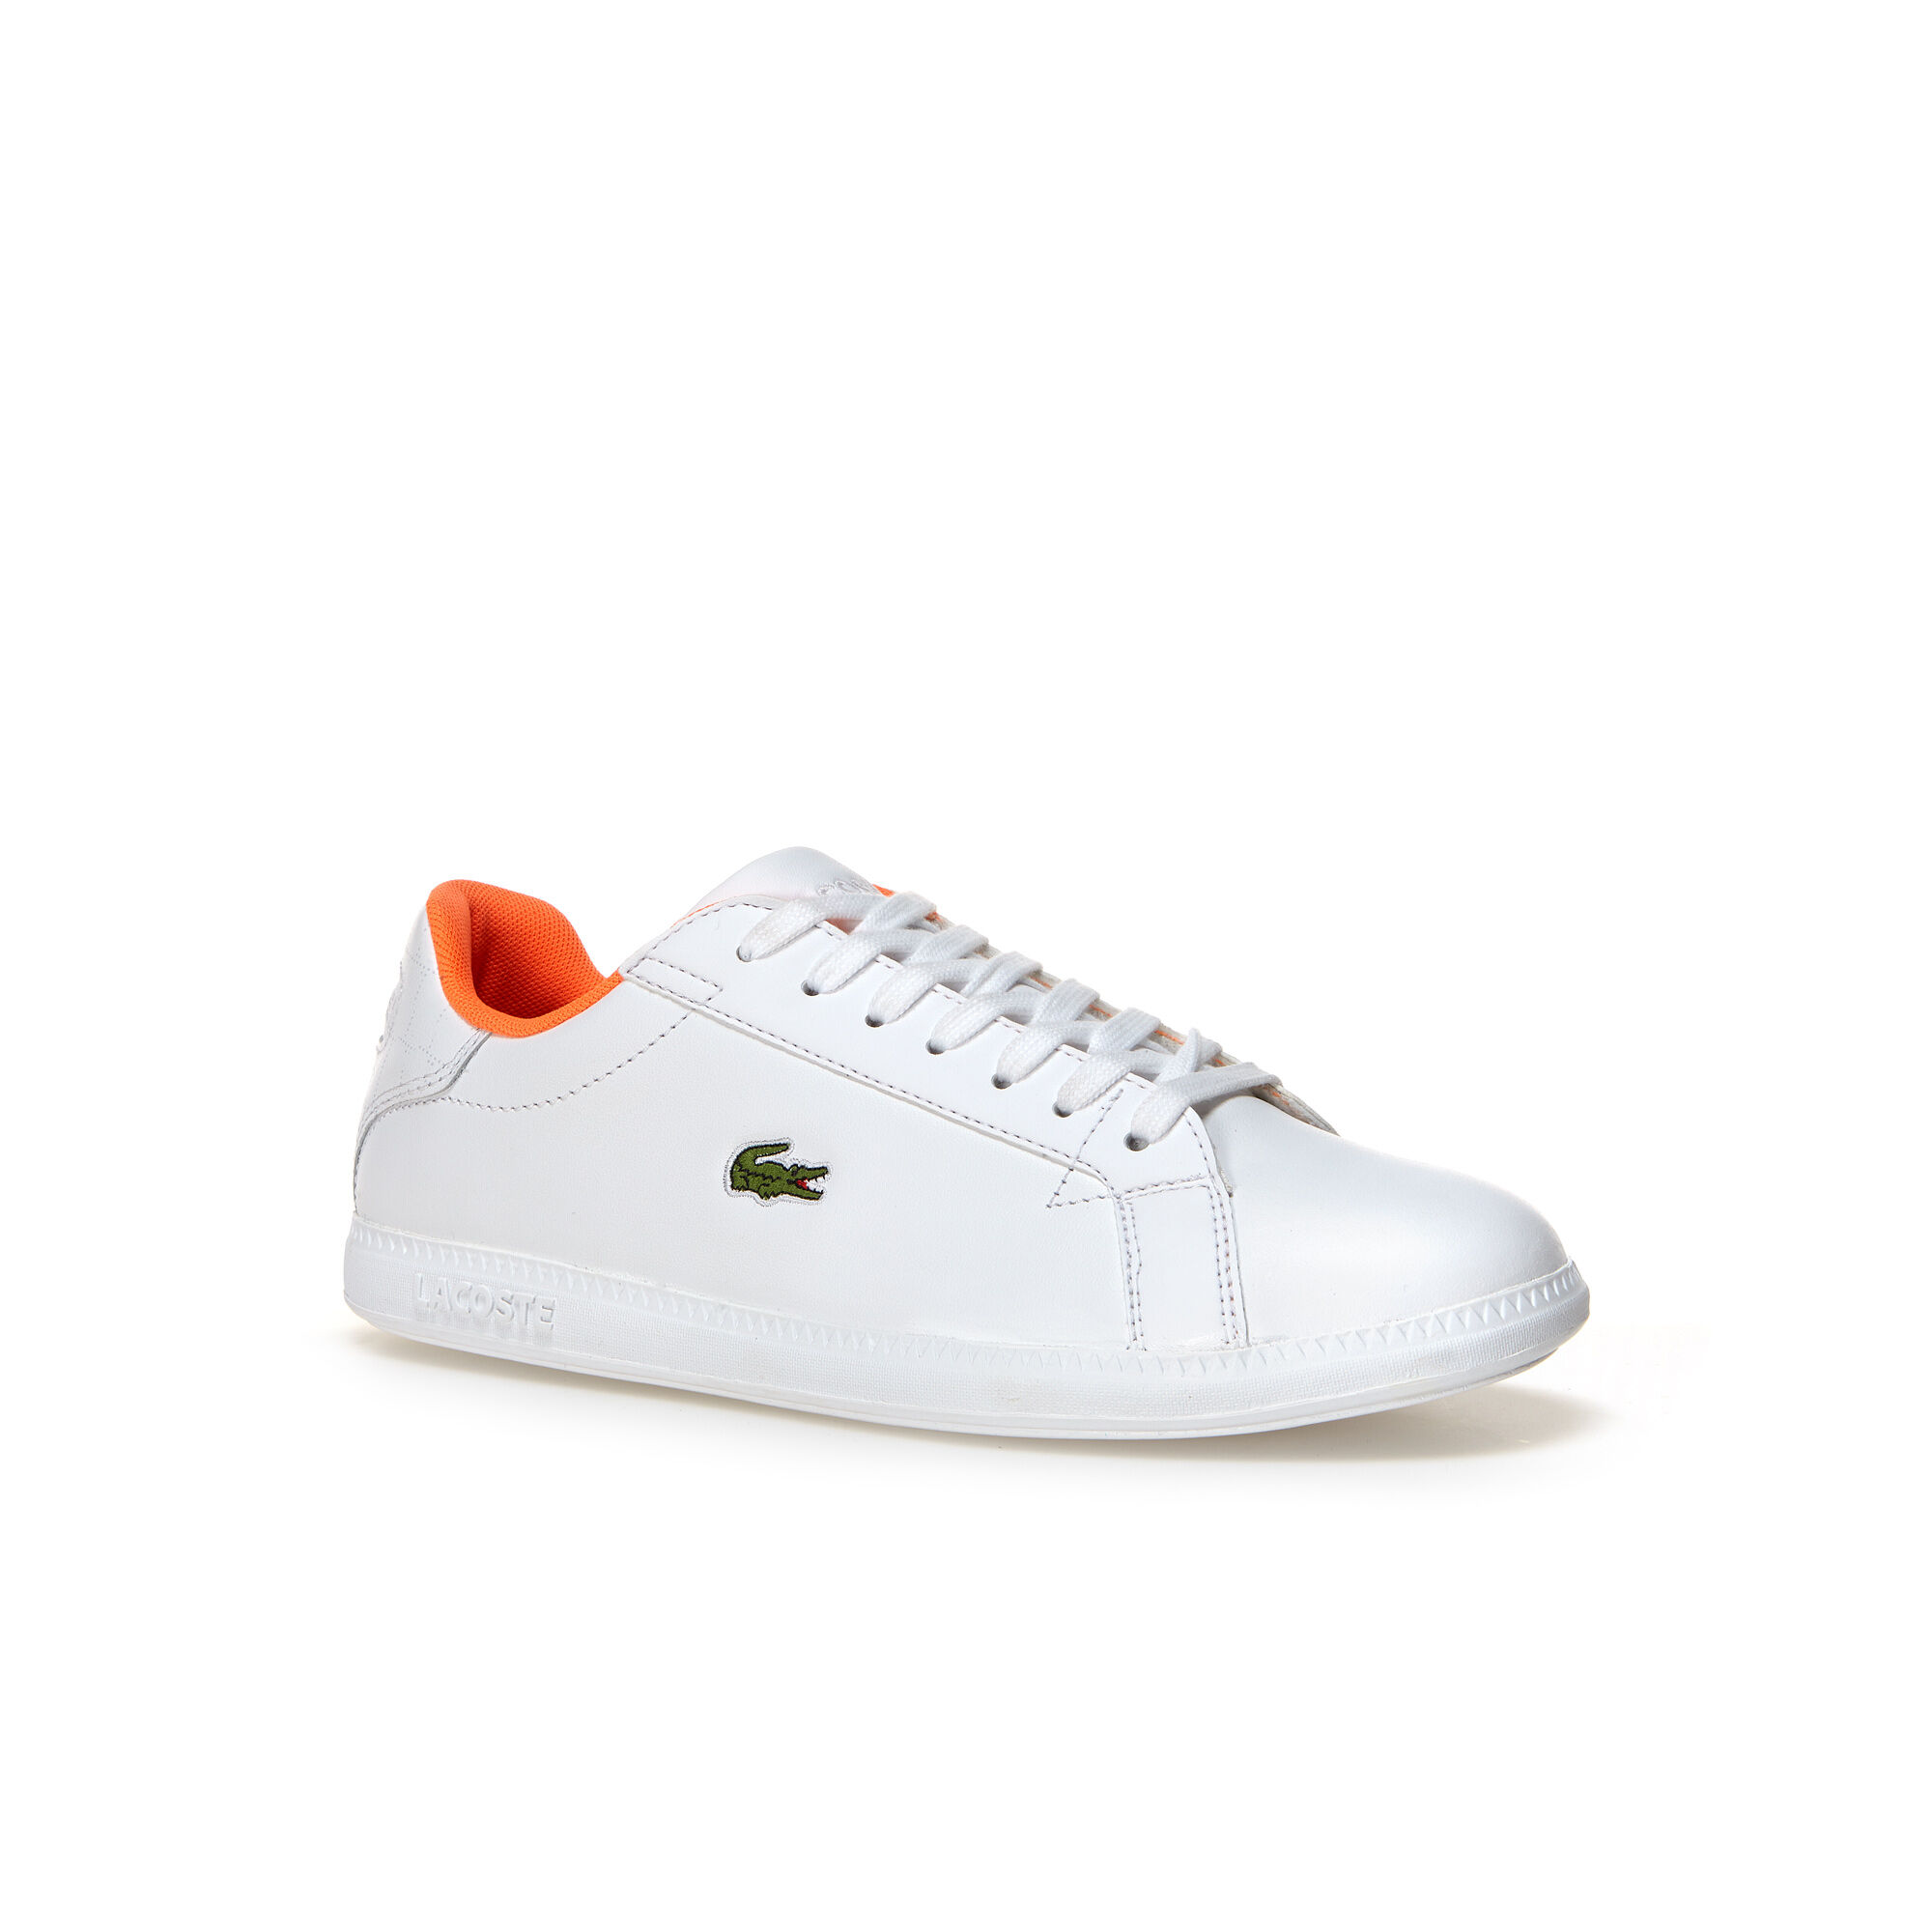 lacoste shoes 2015 collection short